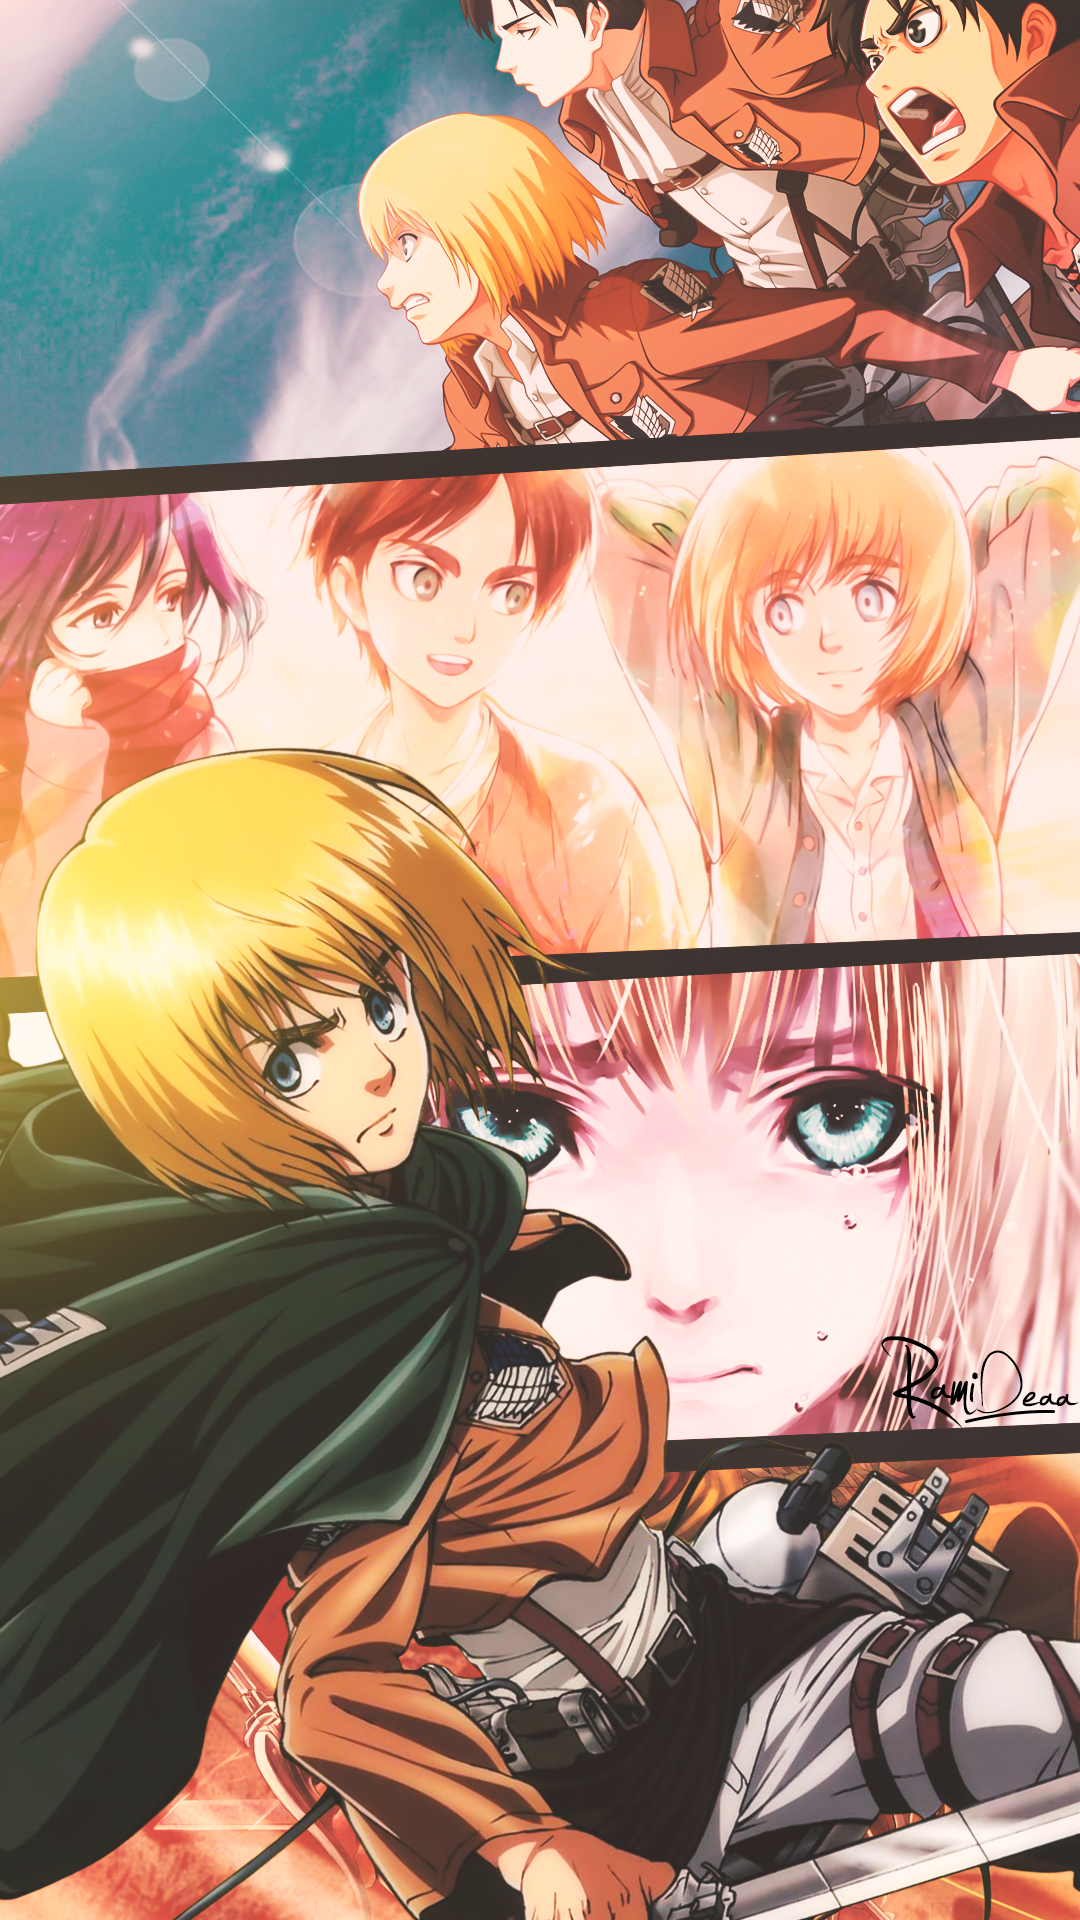 Armin Arlert Attack On Titan Anime Attack On Titan Art Anime Wallpaper